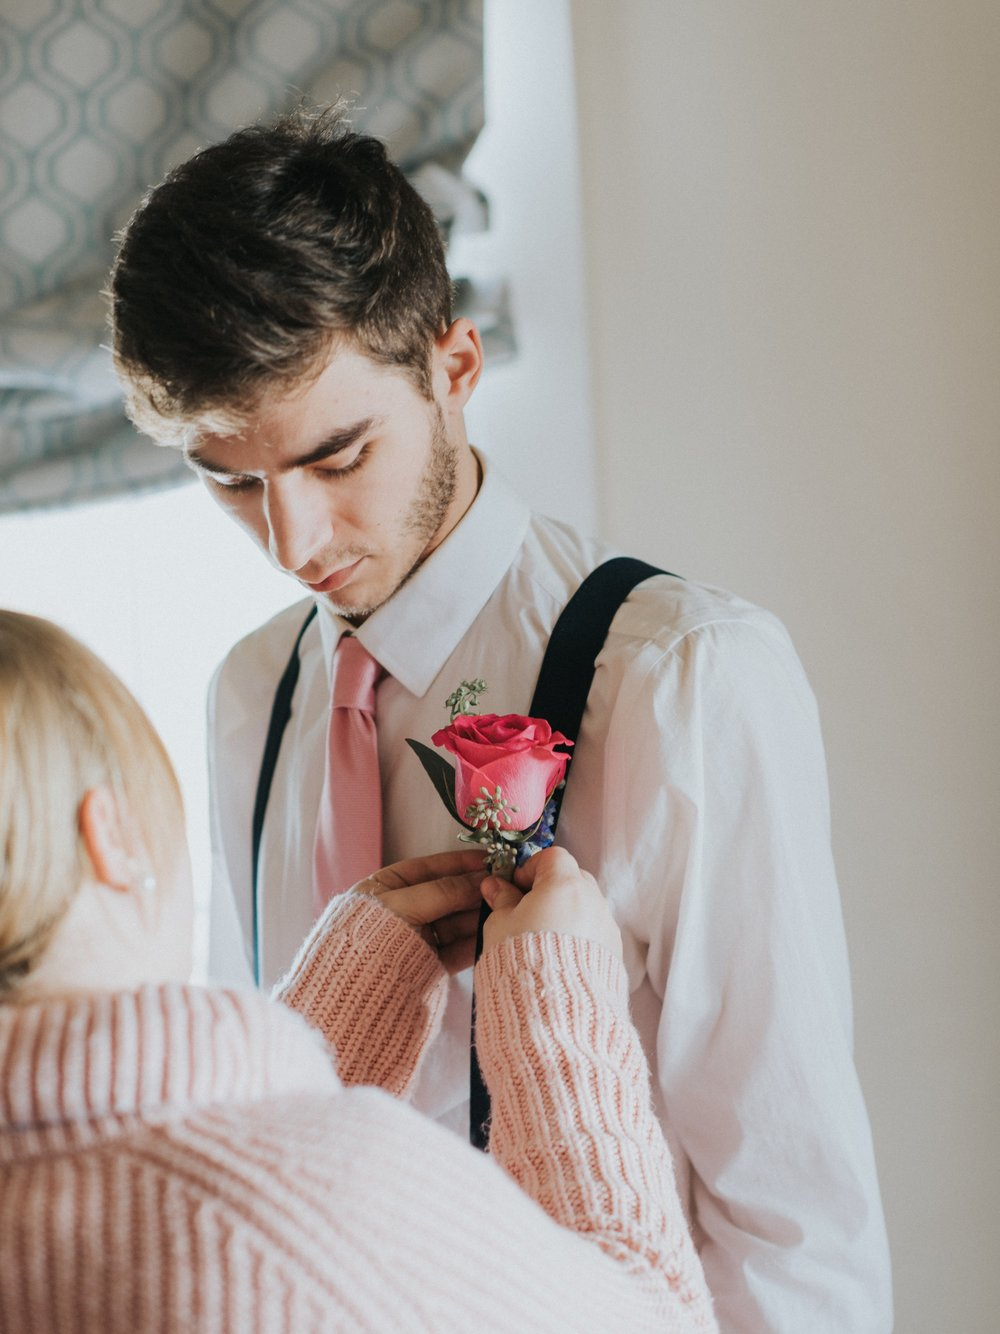 Pinning a boutonniere Louisiana wedding